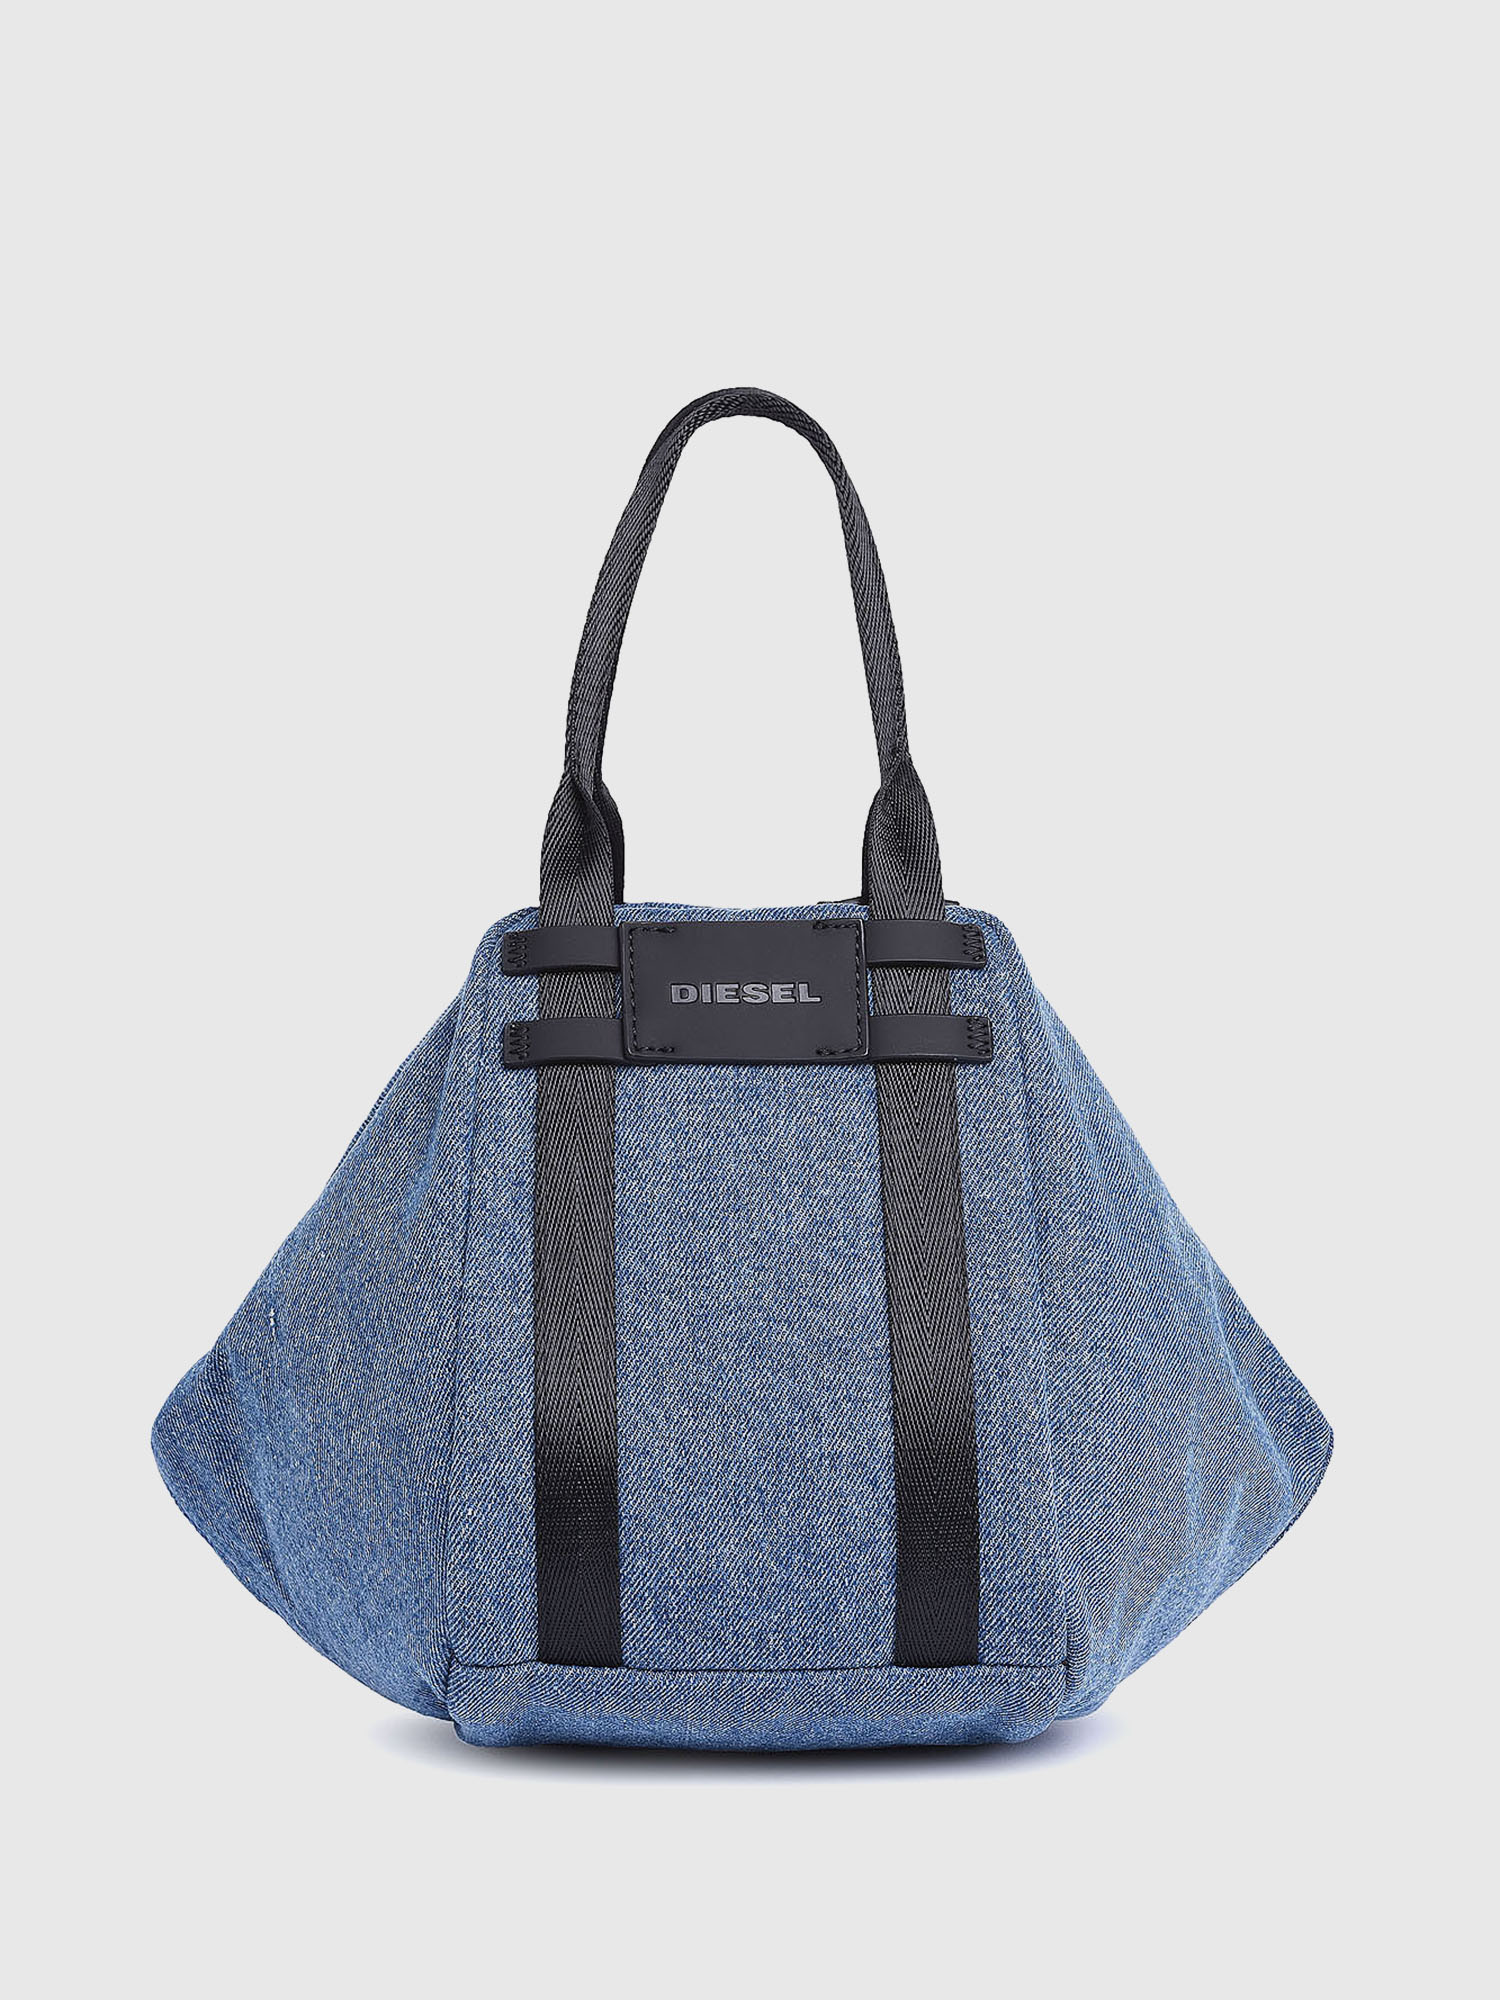 Diesel - CAGE SHOPPER XS,  - Bags - Image 1